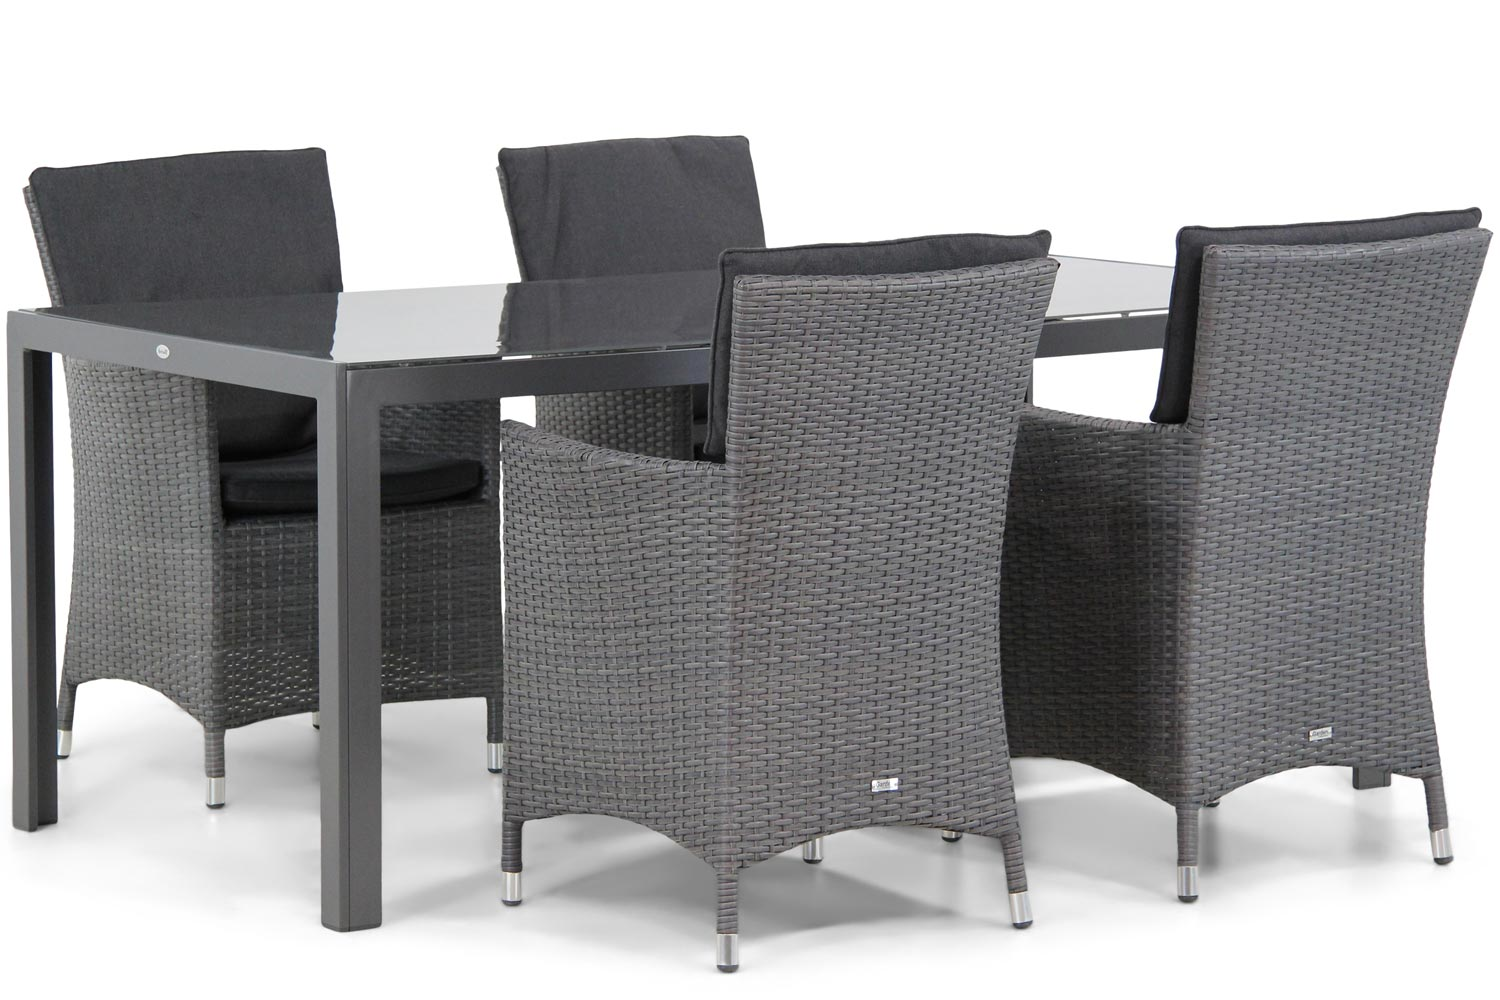 Wicker Garden Collections Orlando/Canberra 180 cm dining tuinset 5-delig